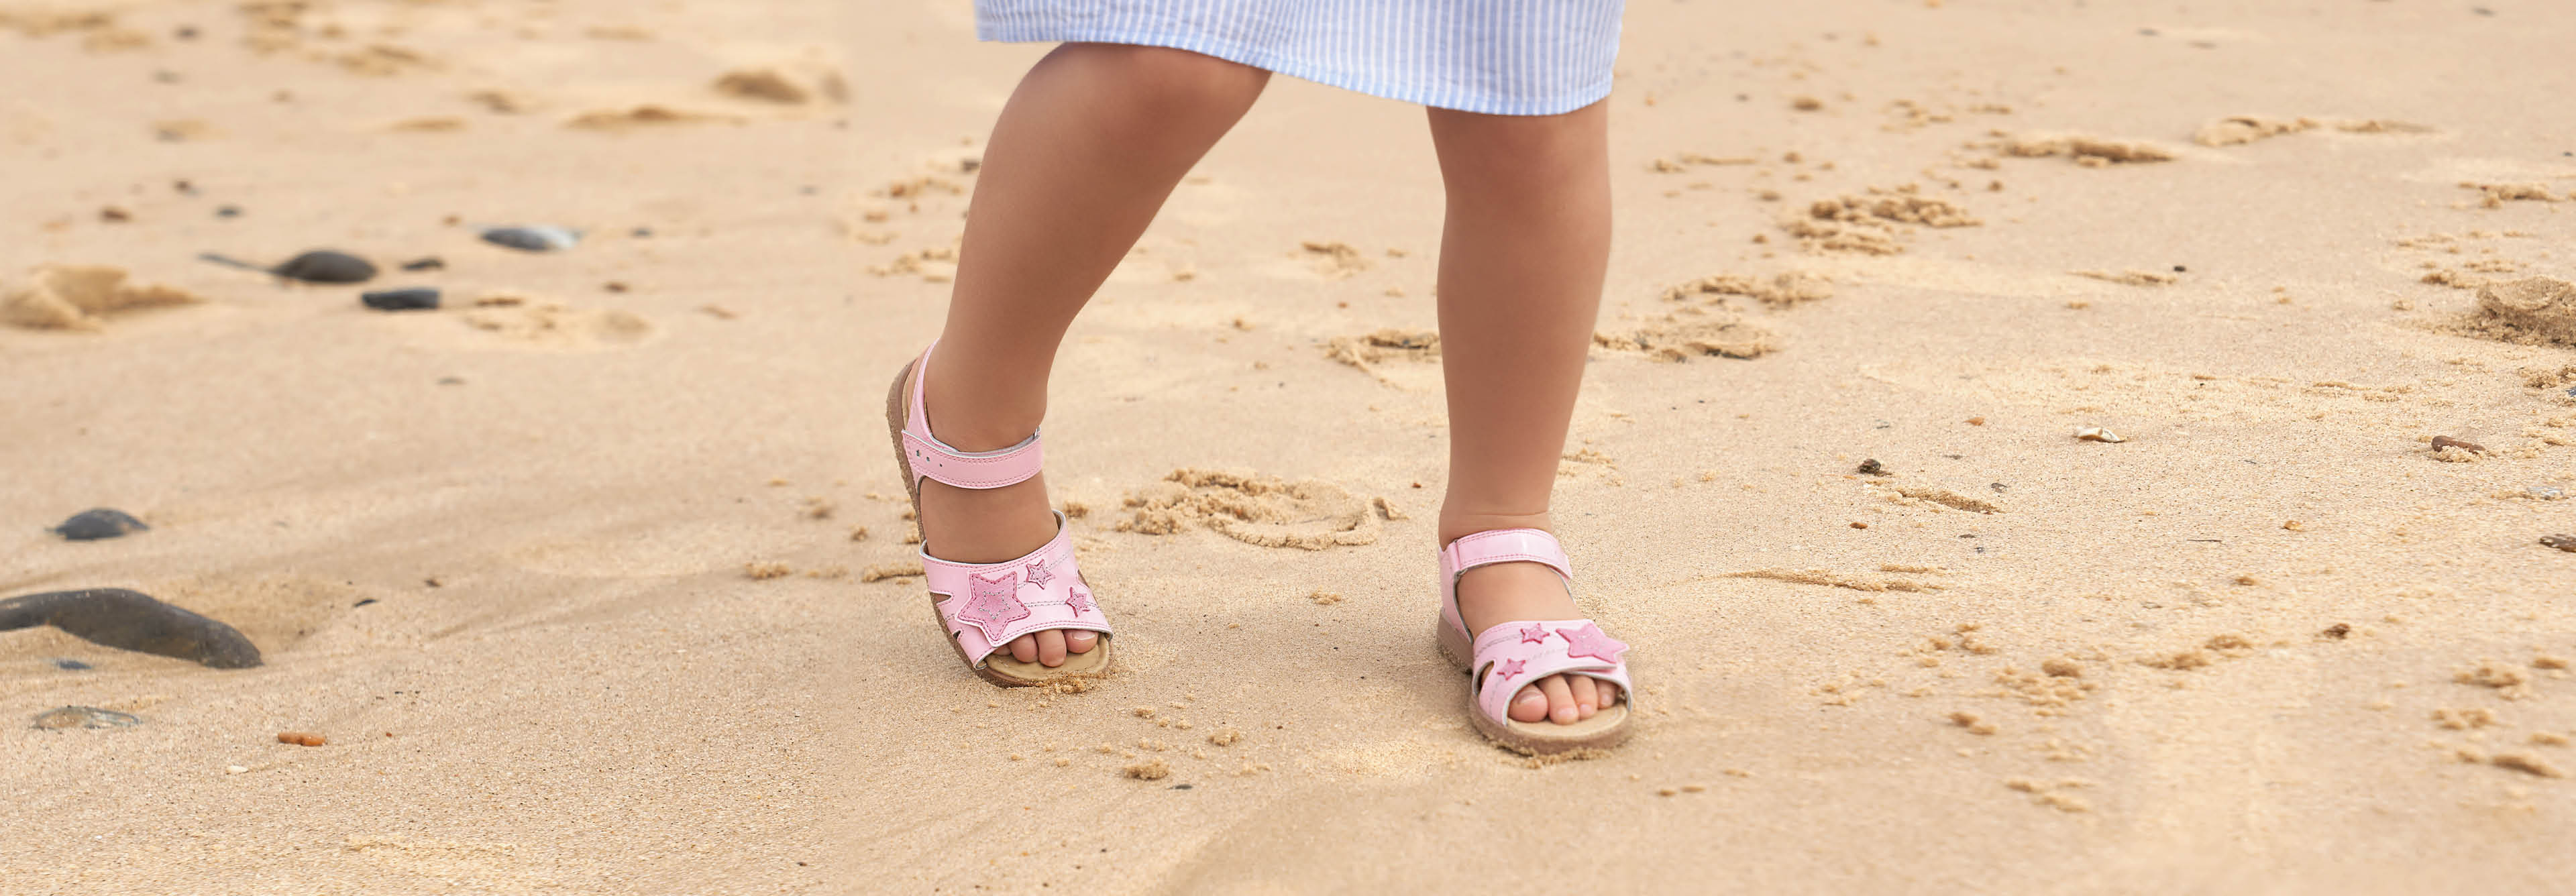 50% off* sandals & canvas